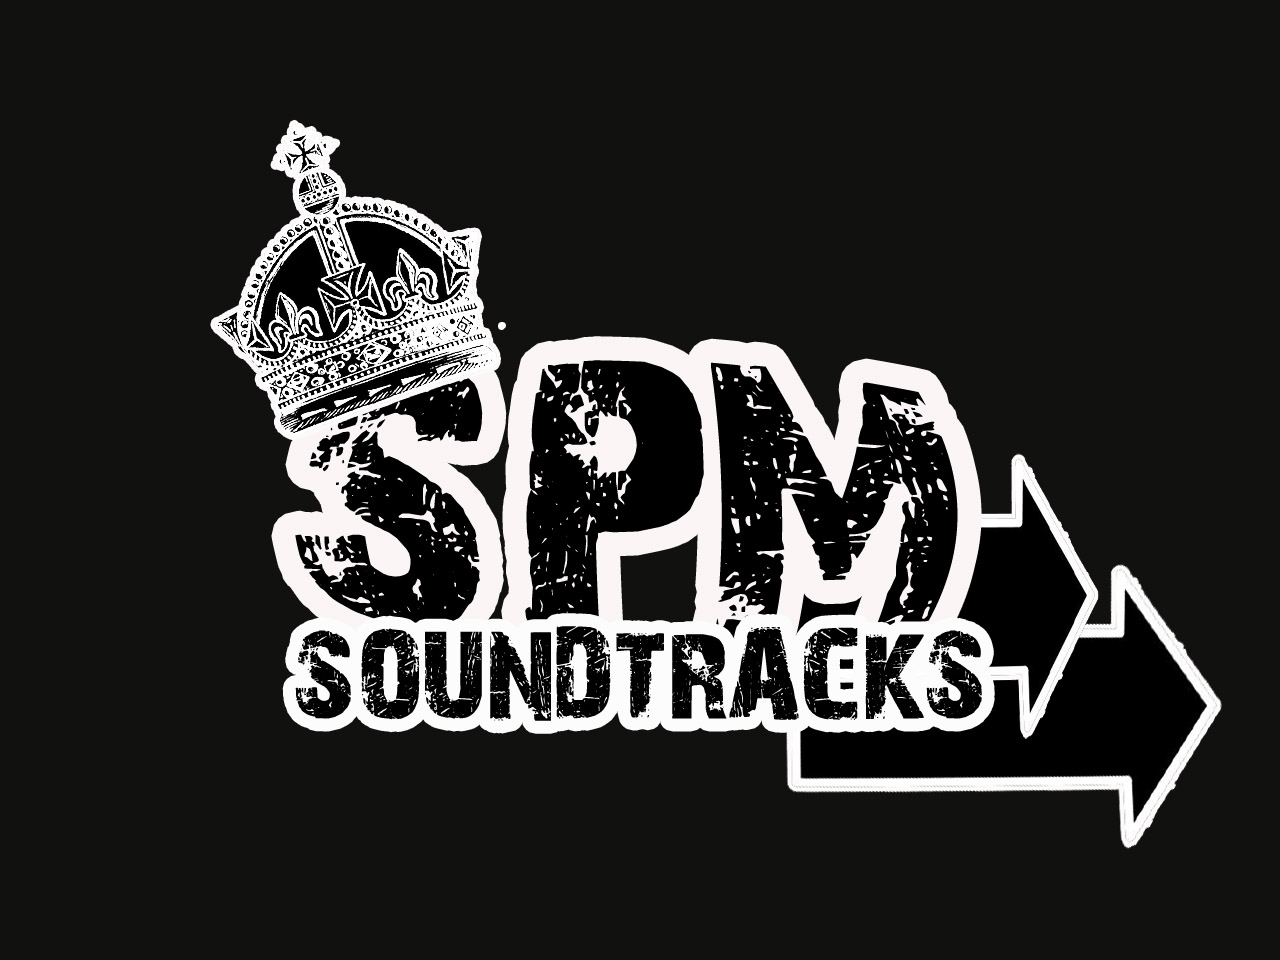 SPM Soundtracks